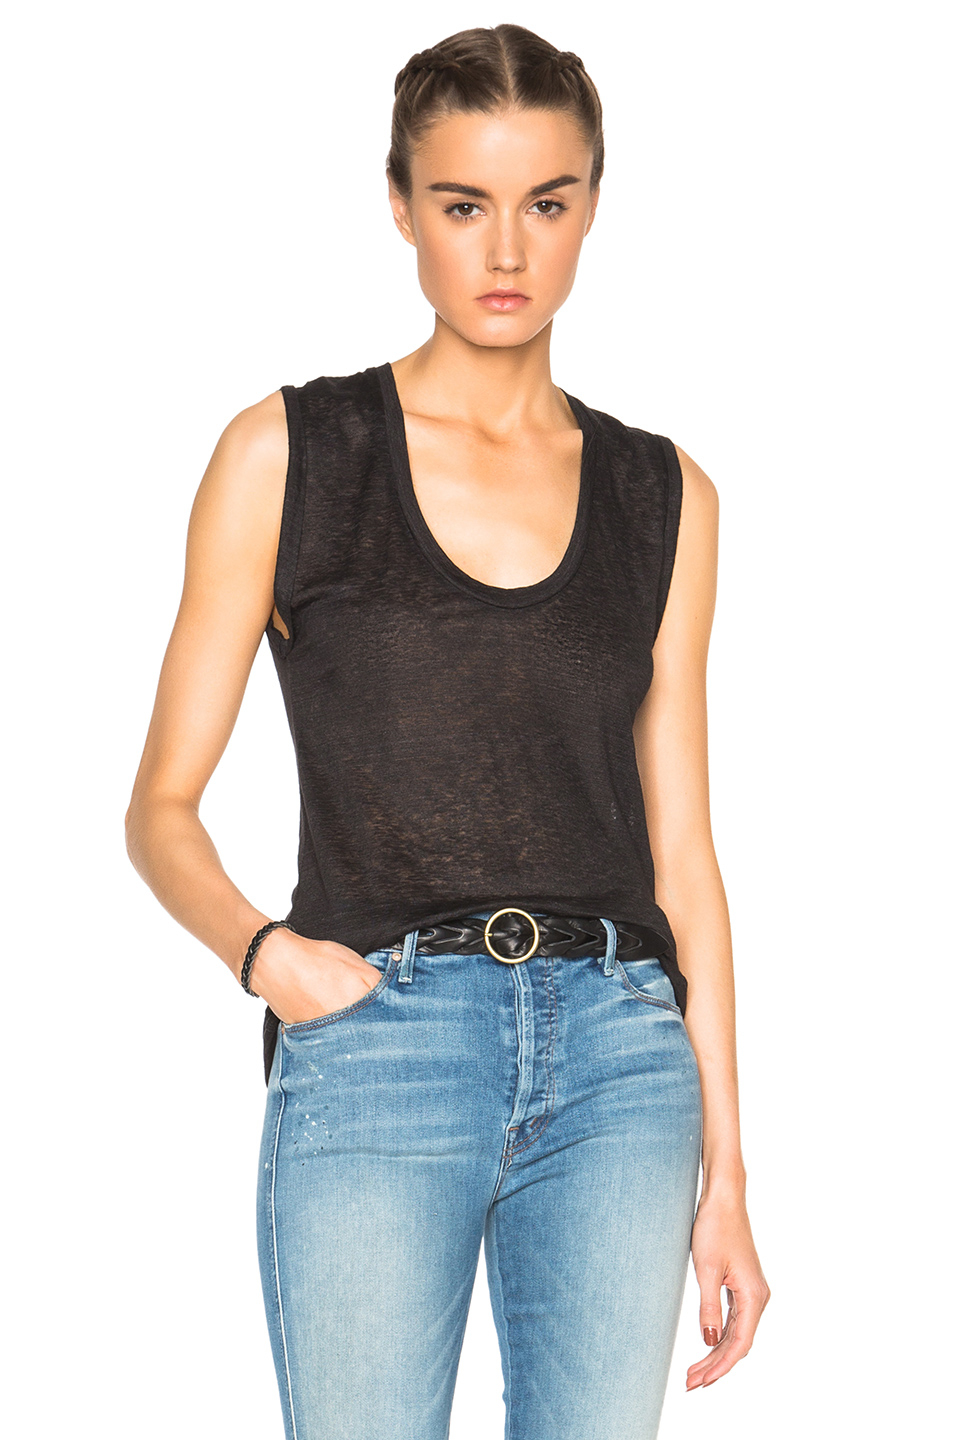 Isabel marant maik linen tee in black lyst for Isabel marant t shirt sale